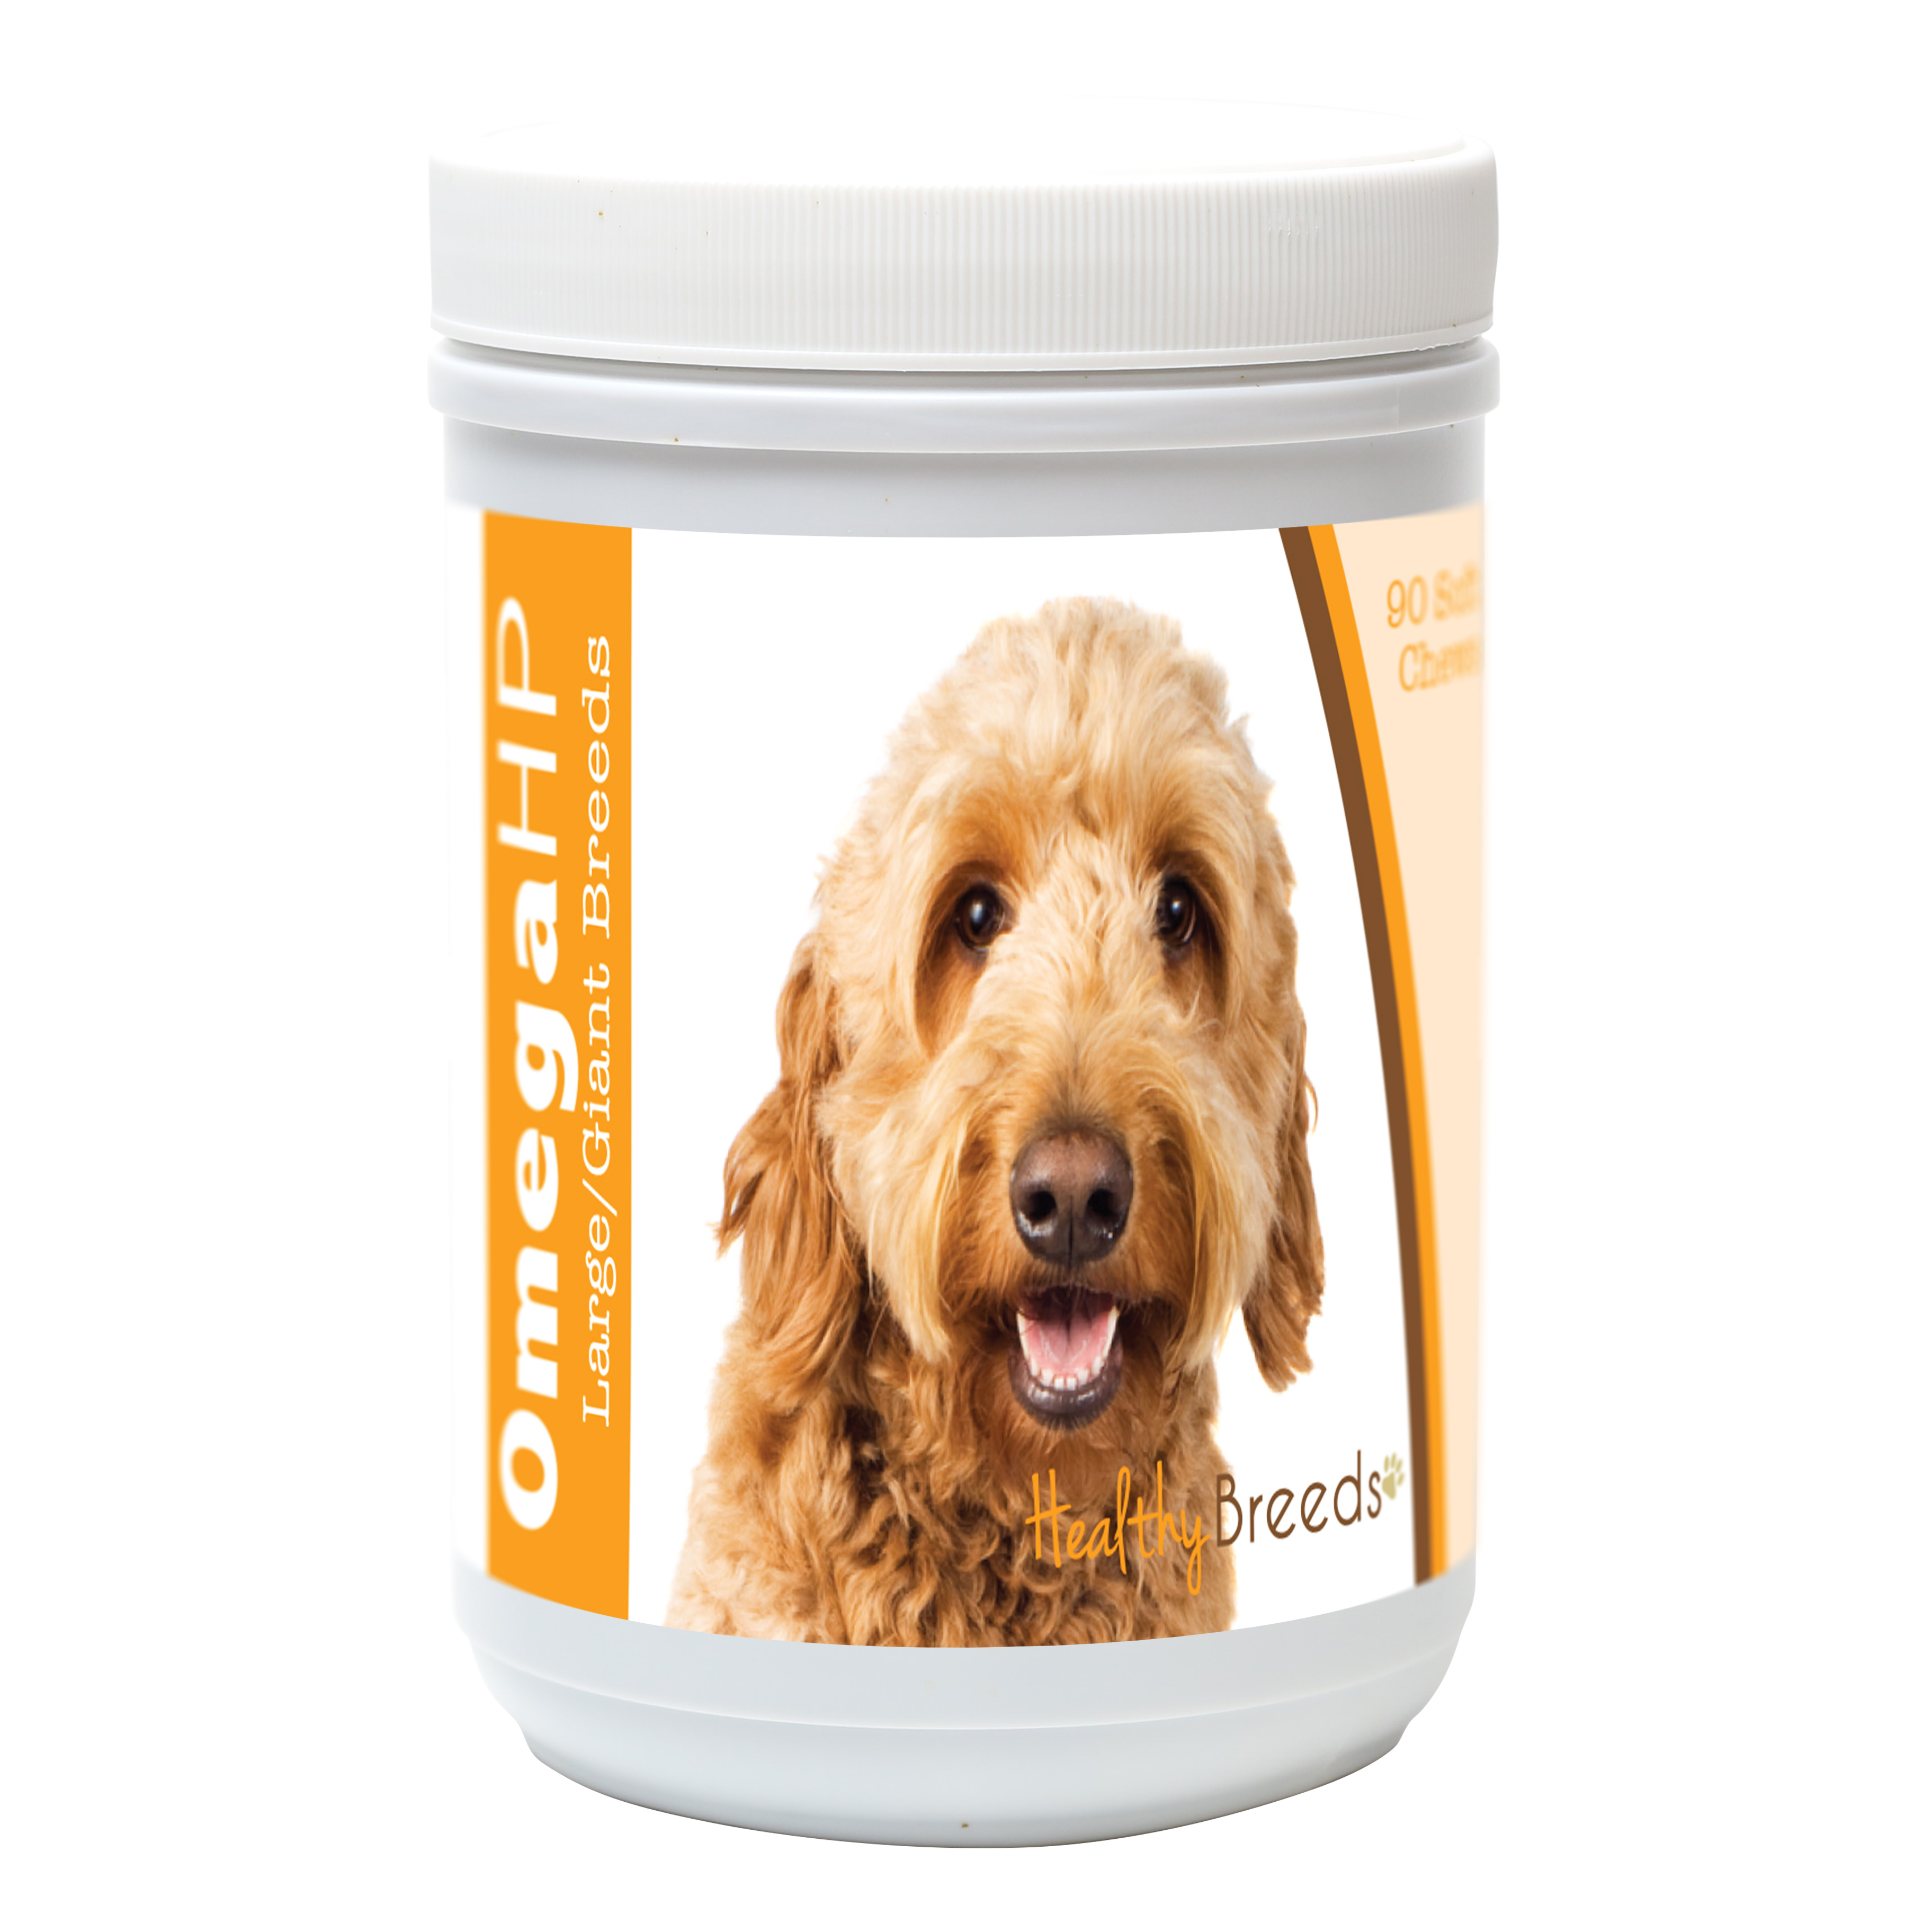 Healthy Breeds Goldendoodle Omega HP Fatty Acid Skin and Coat Support Soft Chews